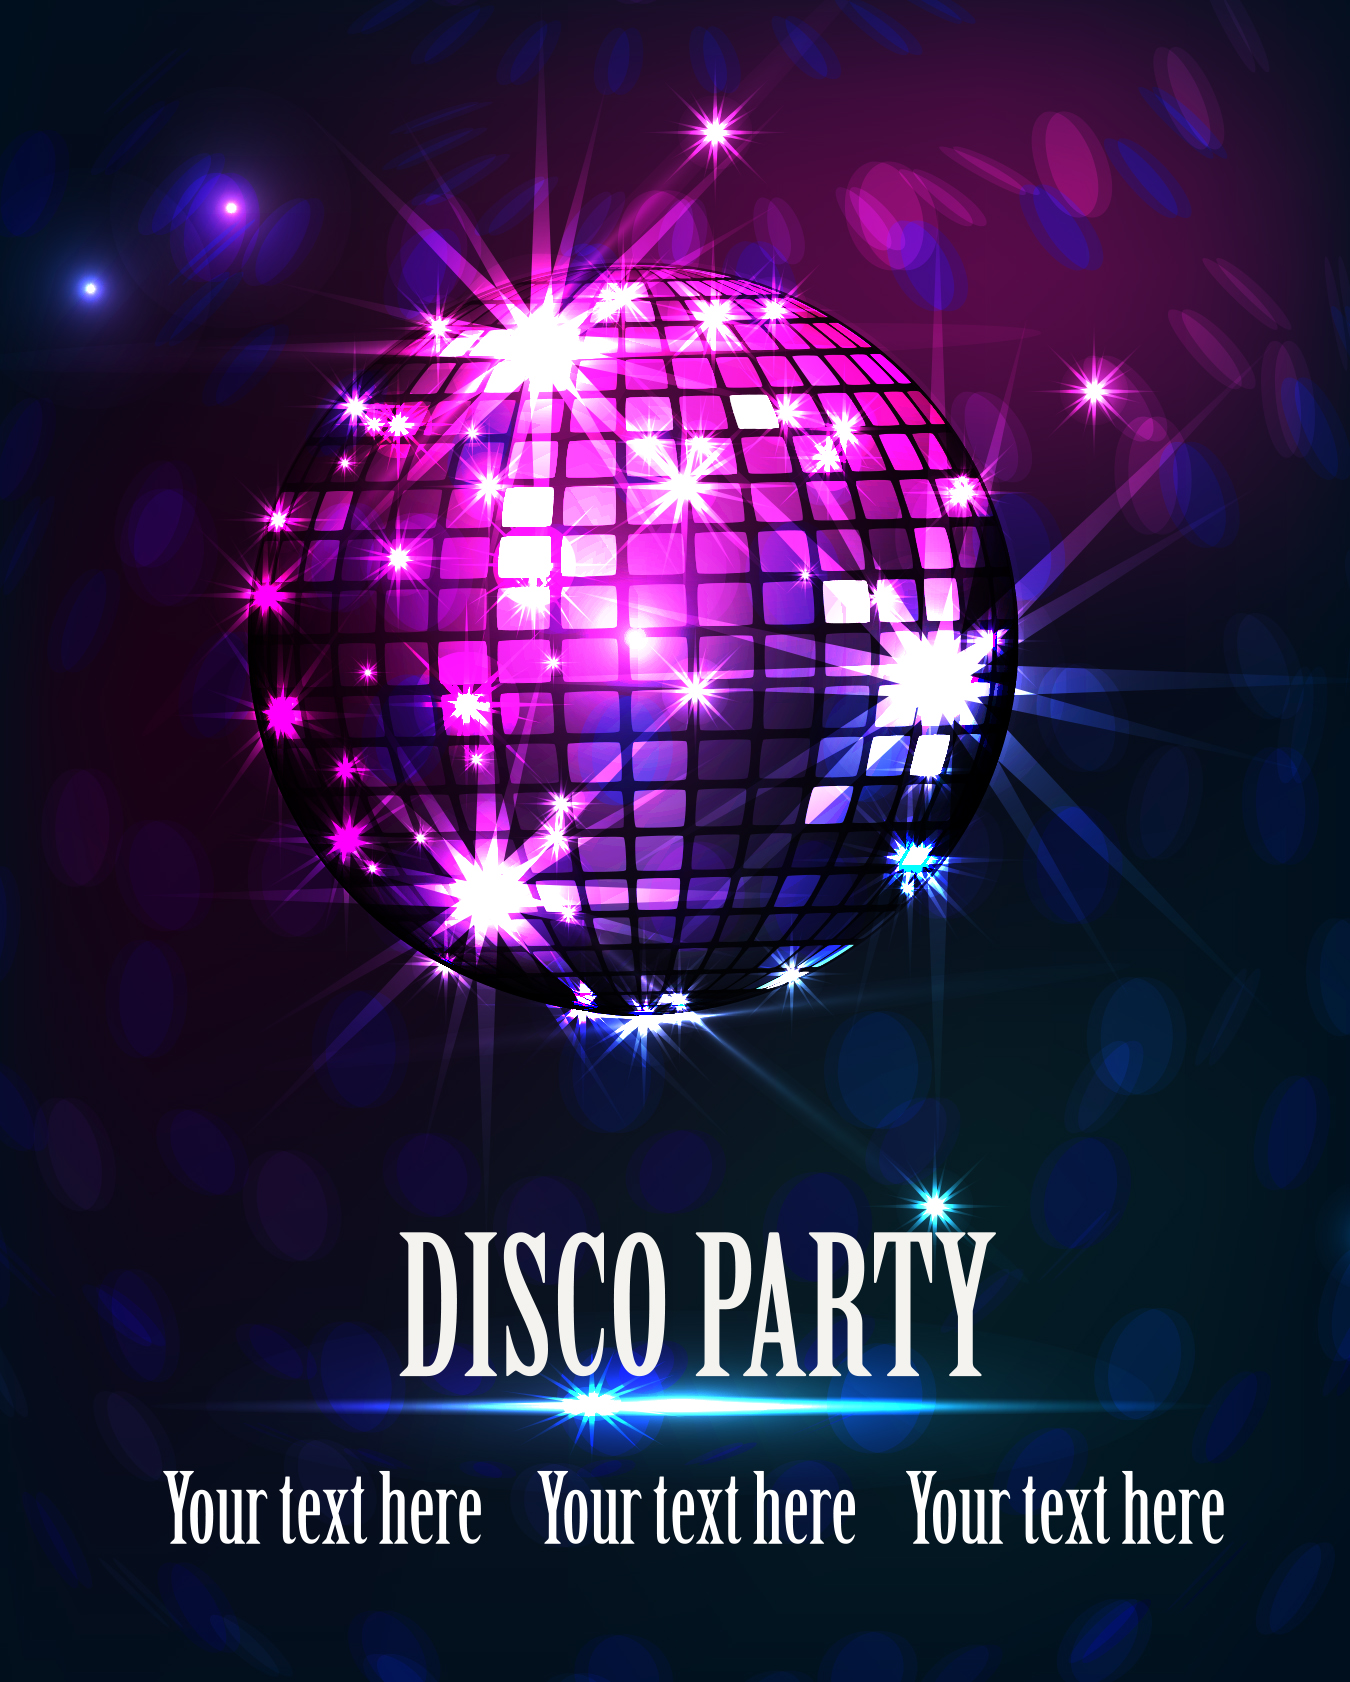 80S Theme Party Invitations with awesome invitation layout